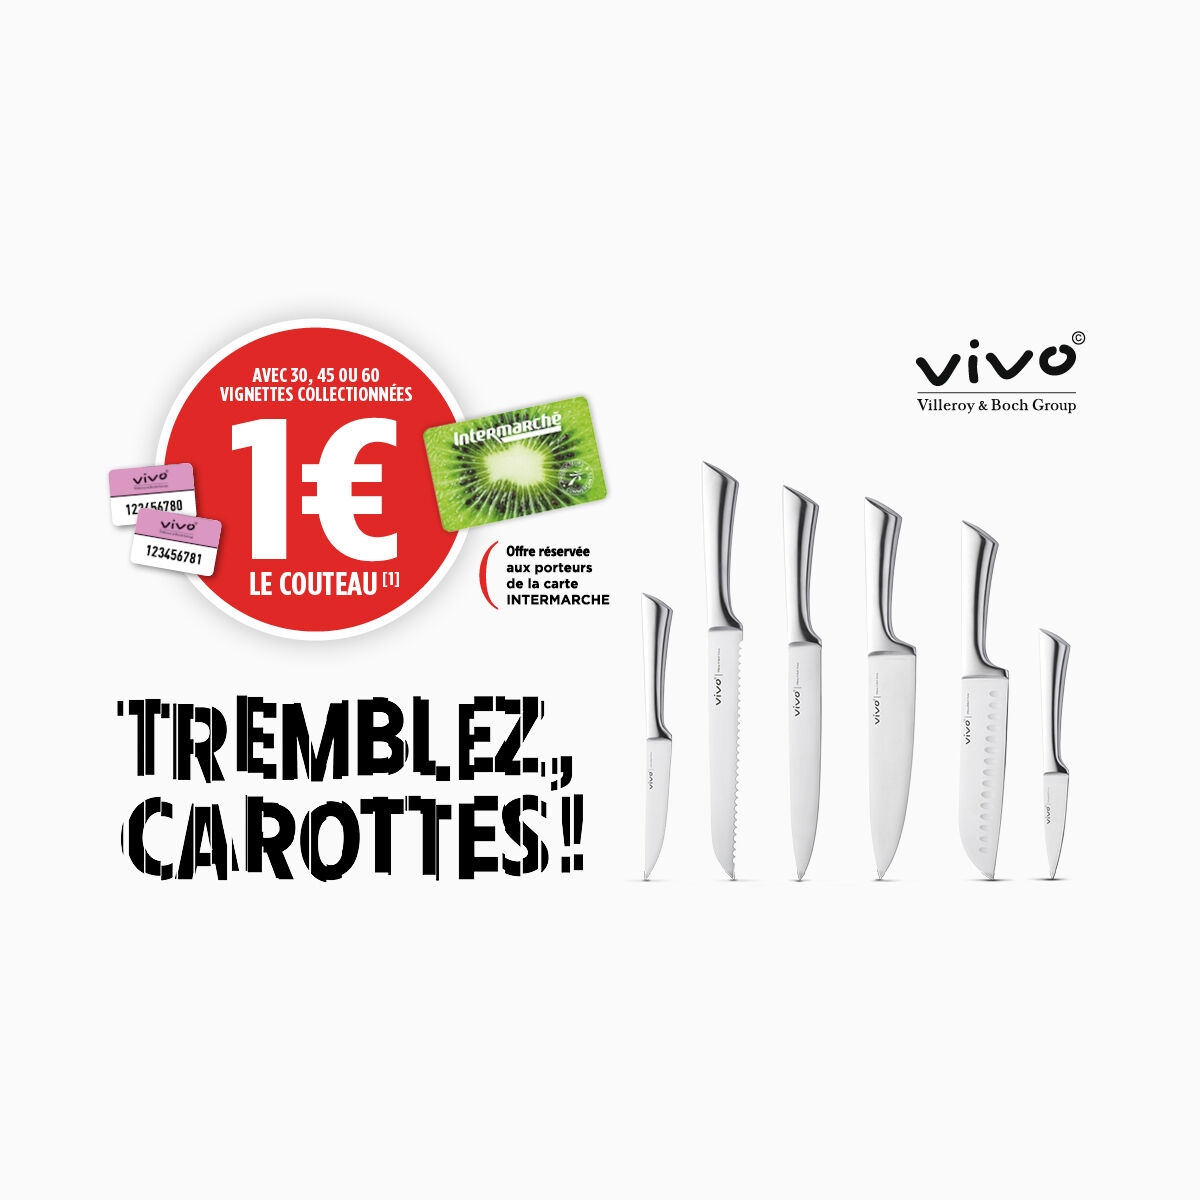 vivo knives for €1 with Intermarché in France